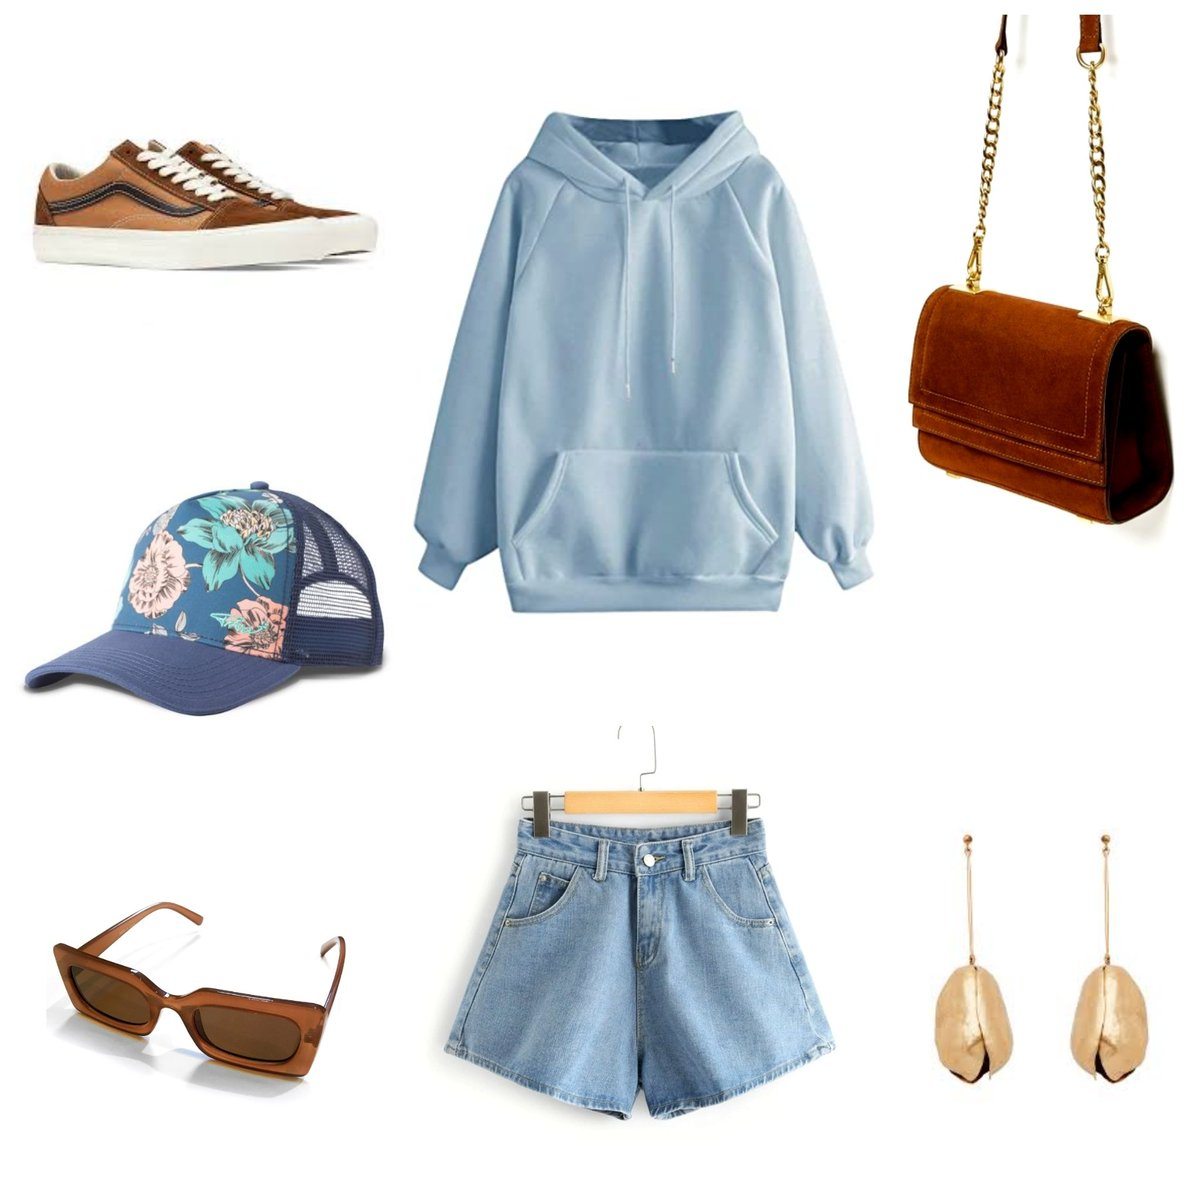 Style: Blue brownish #styling  #fashion #collage pic.twitter.com/k0kr20MHlh